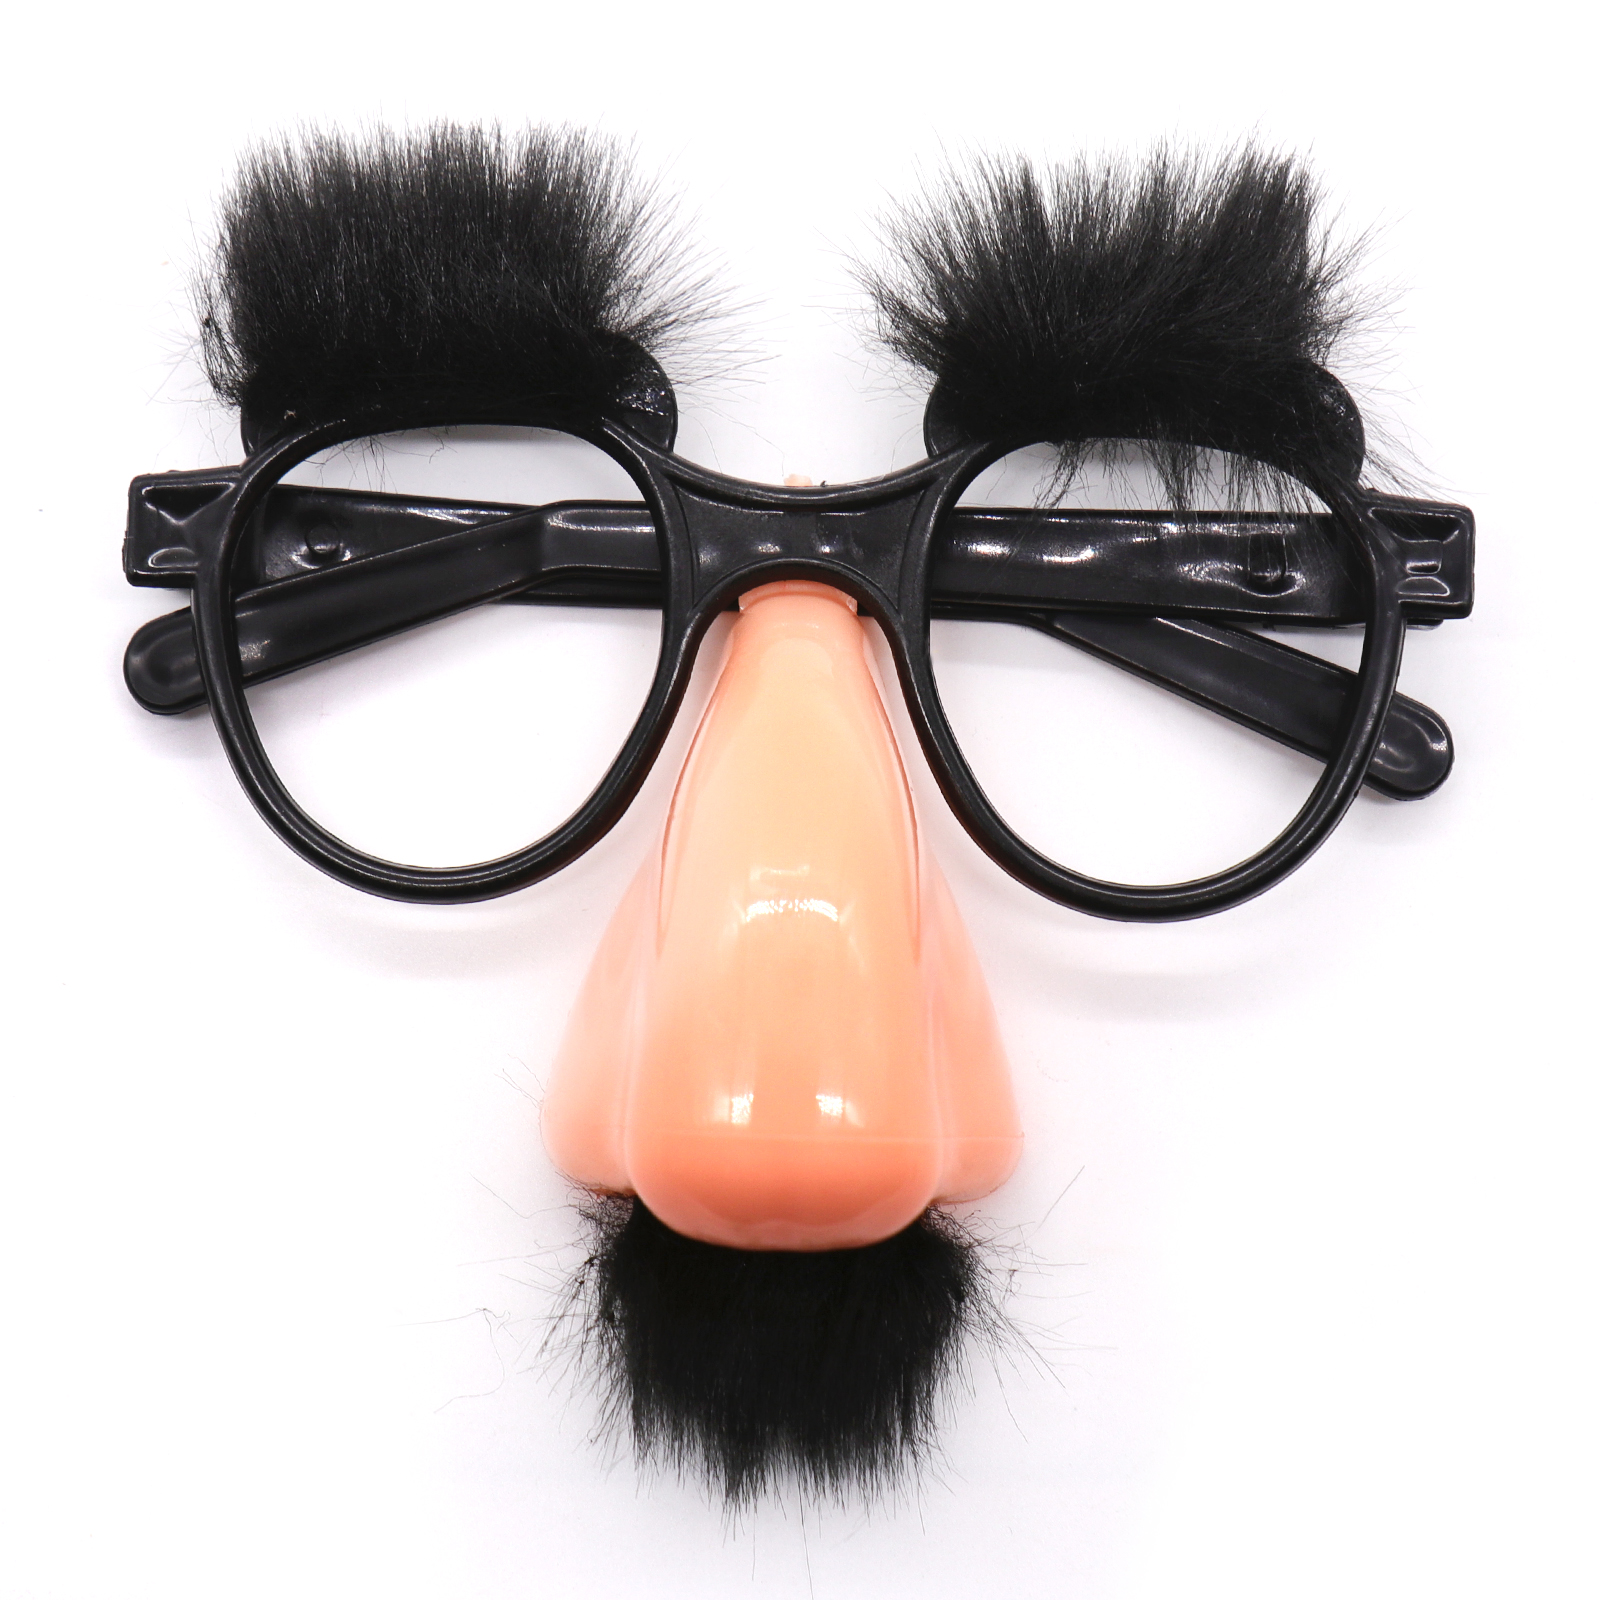 Halloween Fake Mask Cute Black Big Nose Funny Glasses Mustache Eyebrow For Halloween Party Decor Clown Costume Props